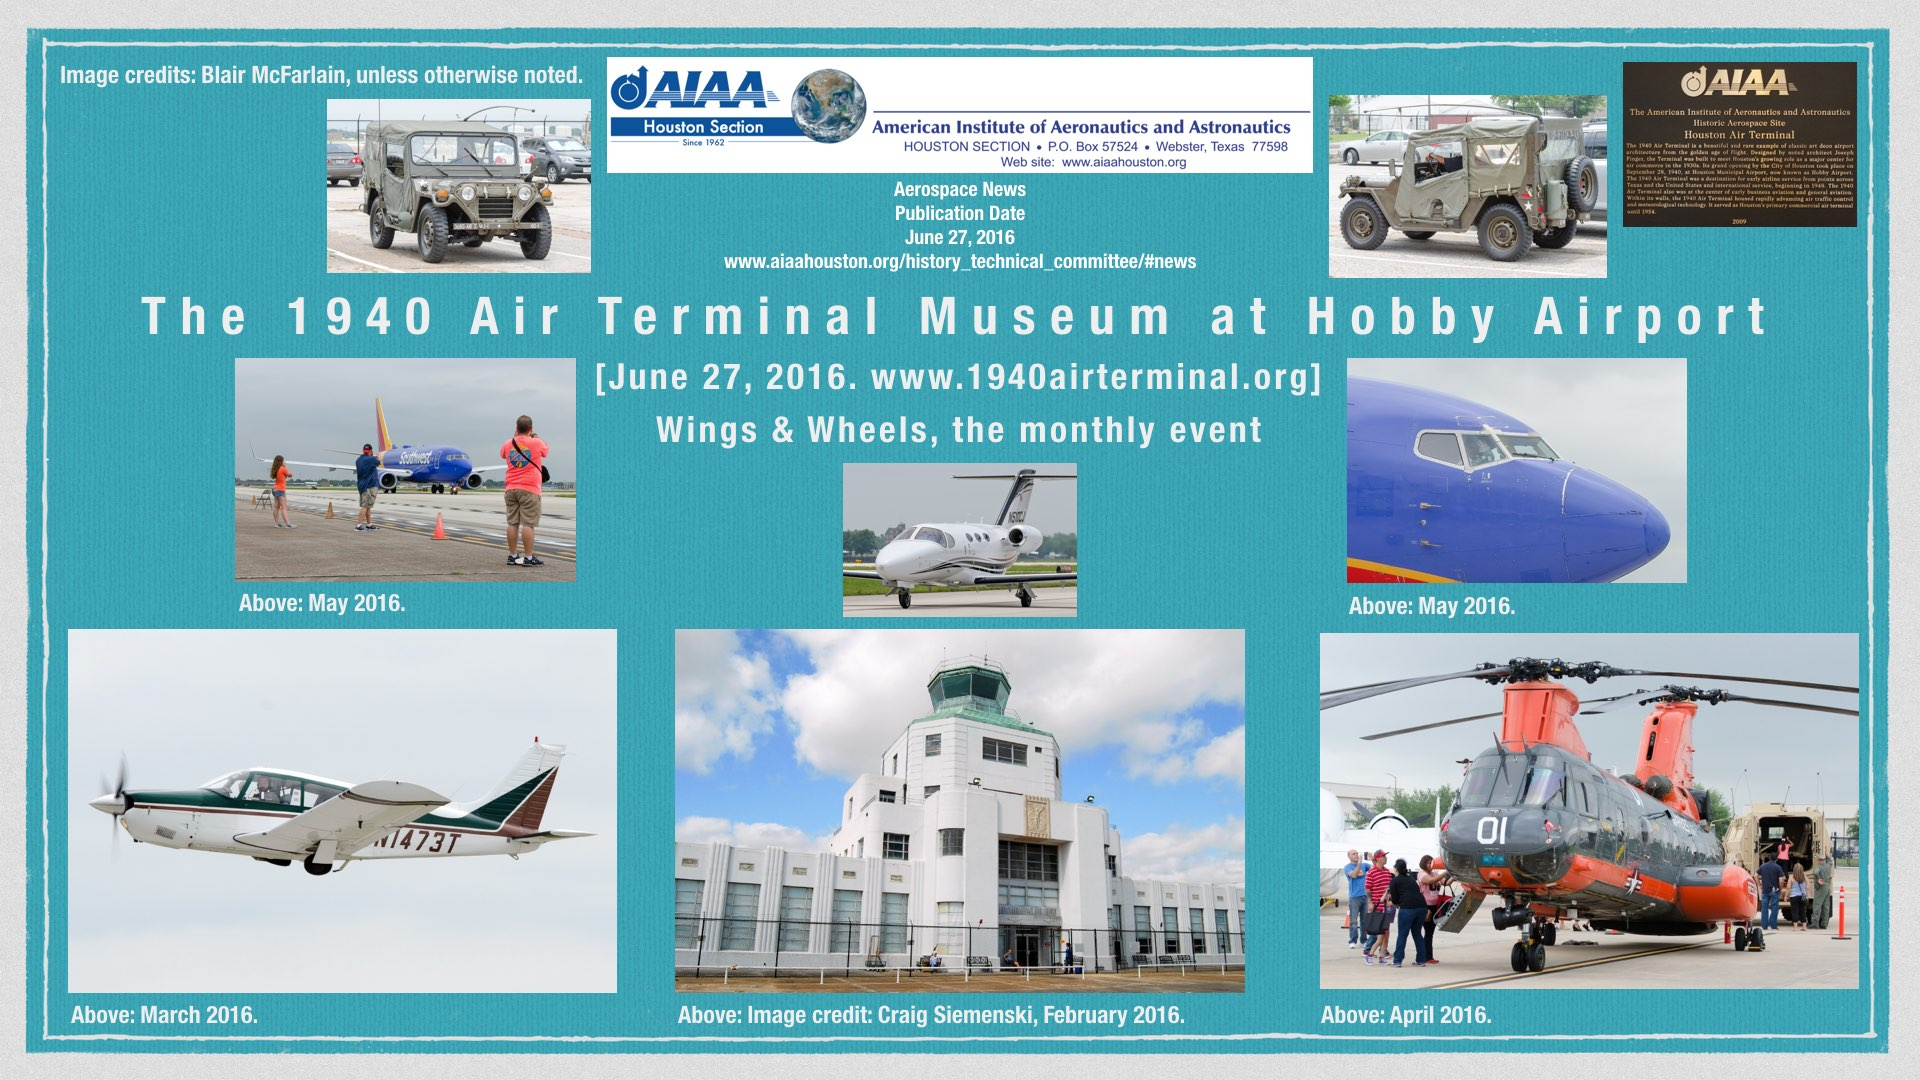 Above: The 1940 Air Terminal Museum at Hobby Airport. An AIAA Historic Aerospace Site. The monthly Wings & Wheels events. (Click to zoom.)